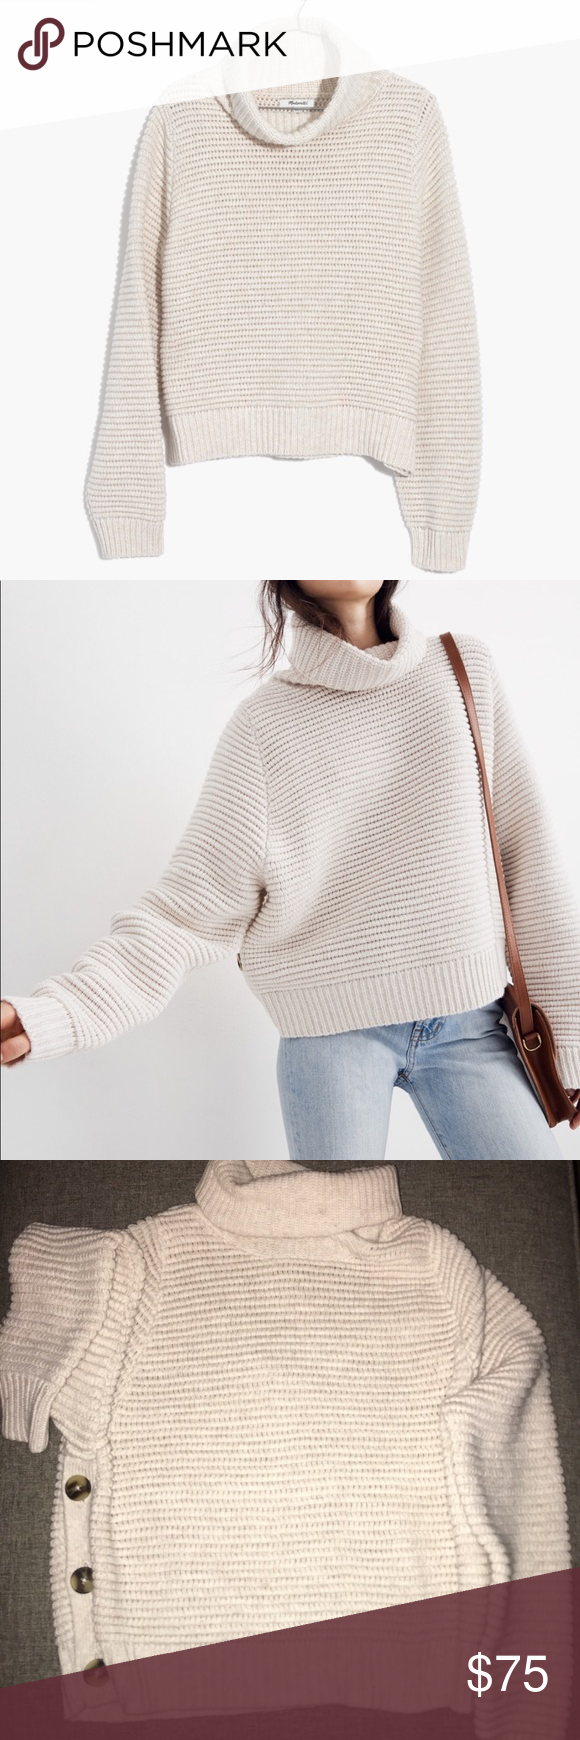 2223d6d6f5f MADEWELL Side-Button Turtleneck Sweater Color is Heather Oak Madewell  Sweaters Cowl   Turtlenecks